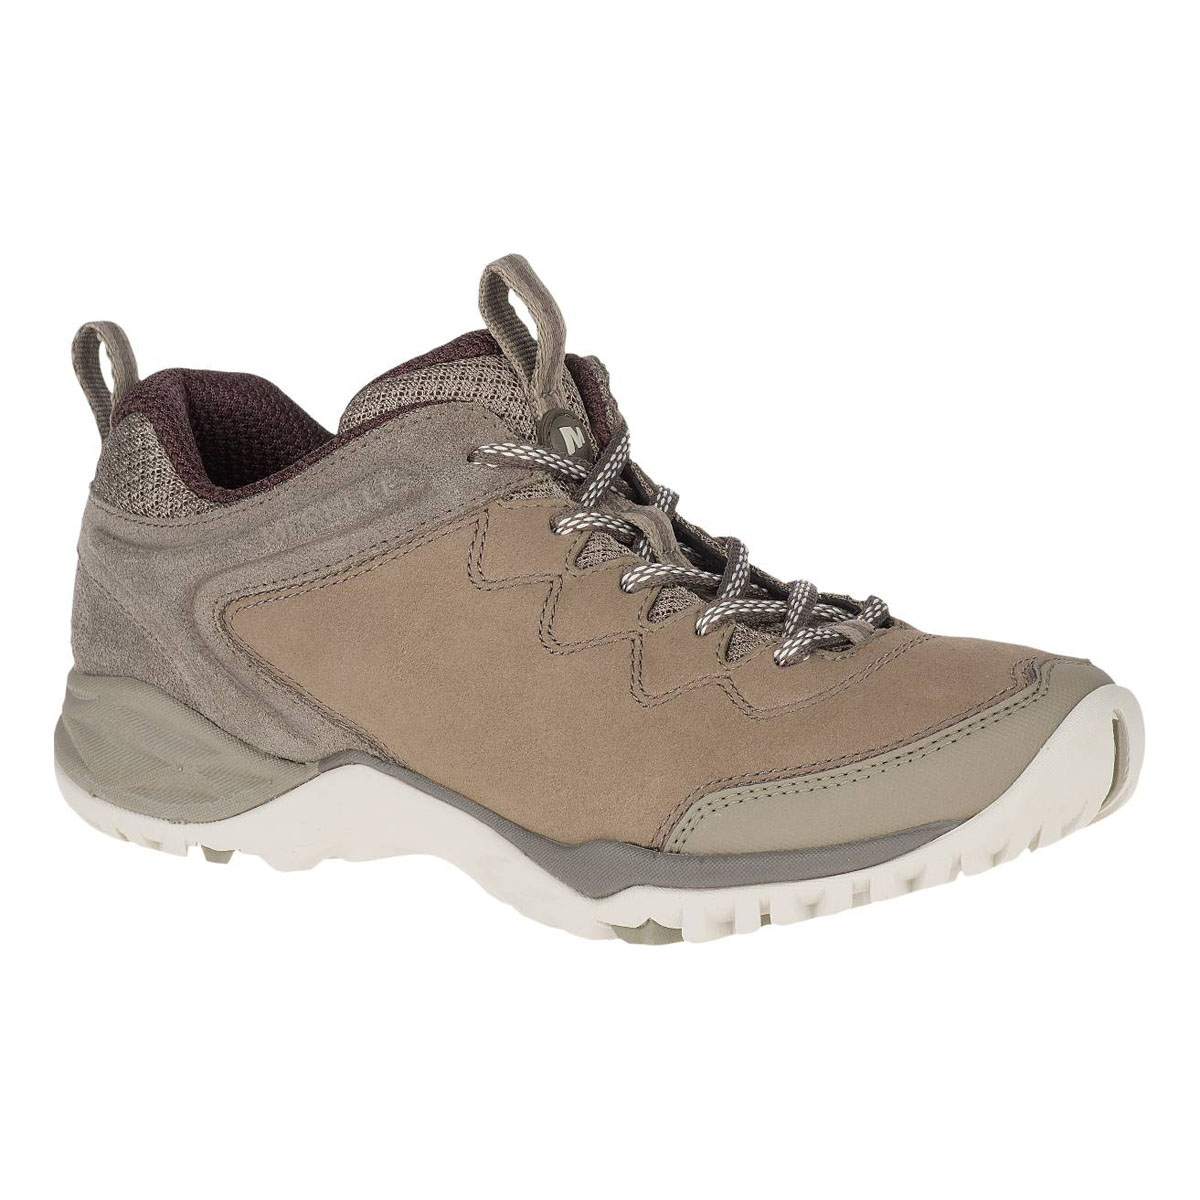 Image of Merrell Siren Traveller Q2 Hiking Shoes (Women s) - Brindle Earth 091255be35